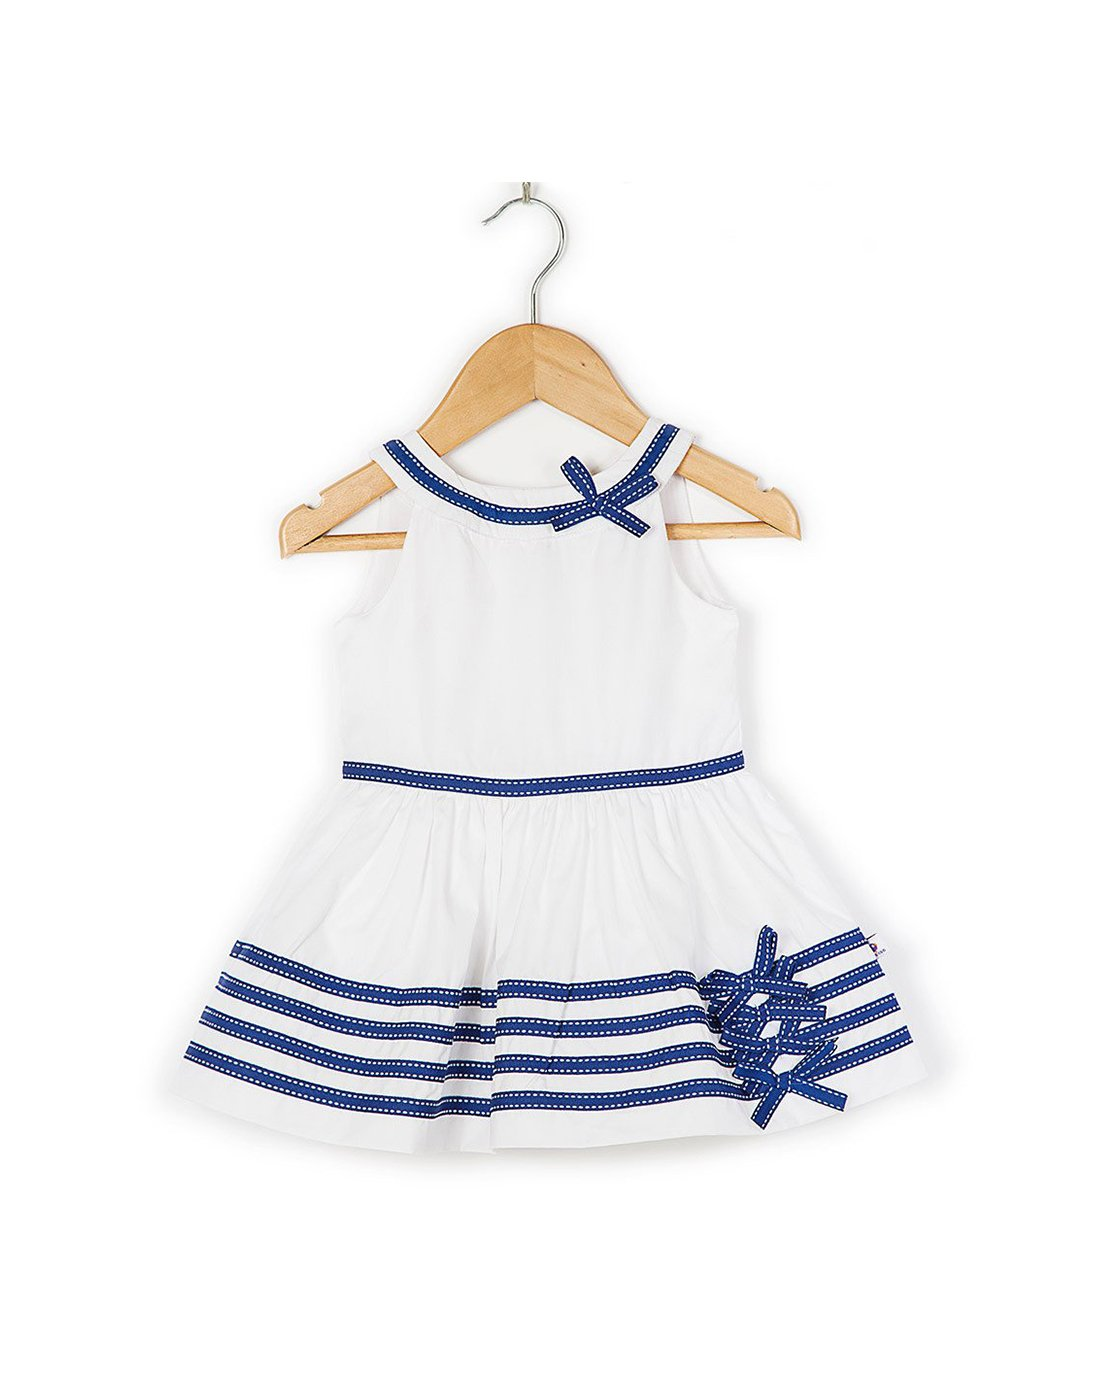 COO COO 'The Rhea' Flared Ribbon Semi-Formal Dress - White/Navy Ribbon